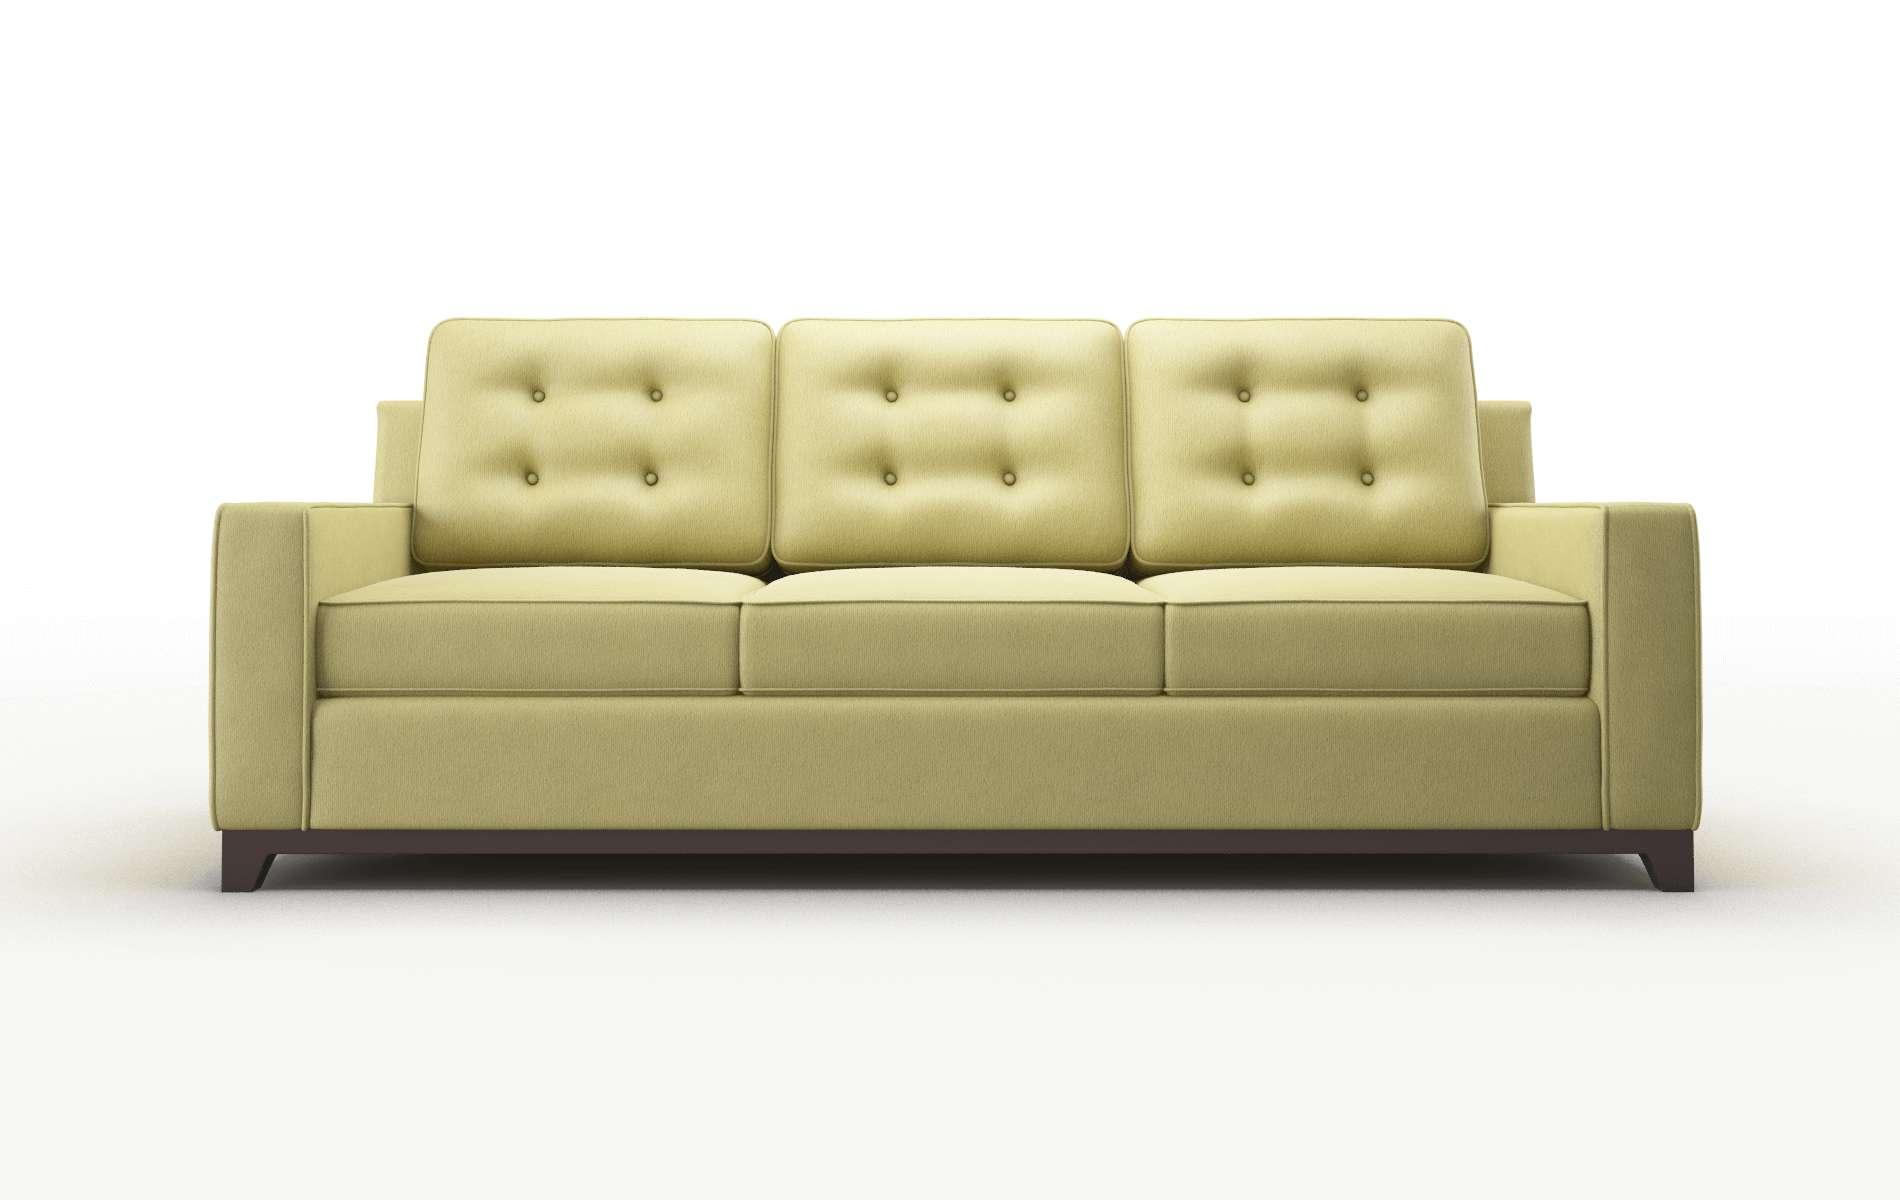 Alexandria Bella Apple Sofa espresso legs 1